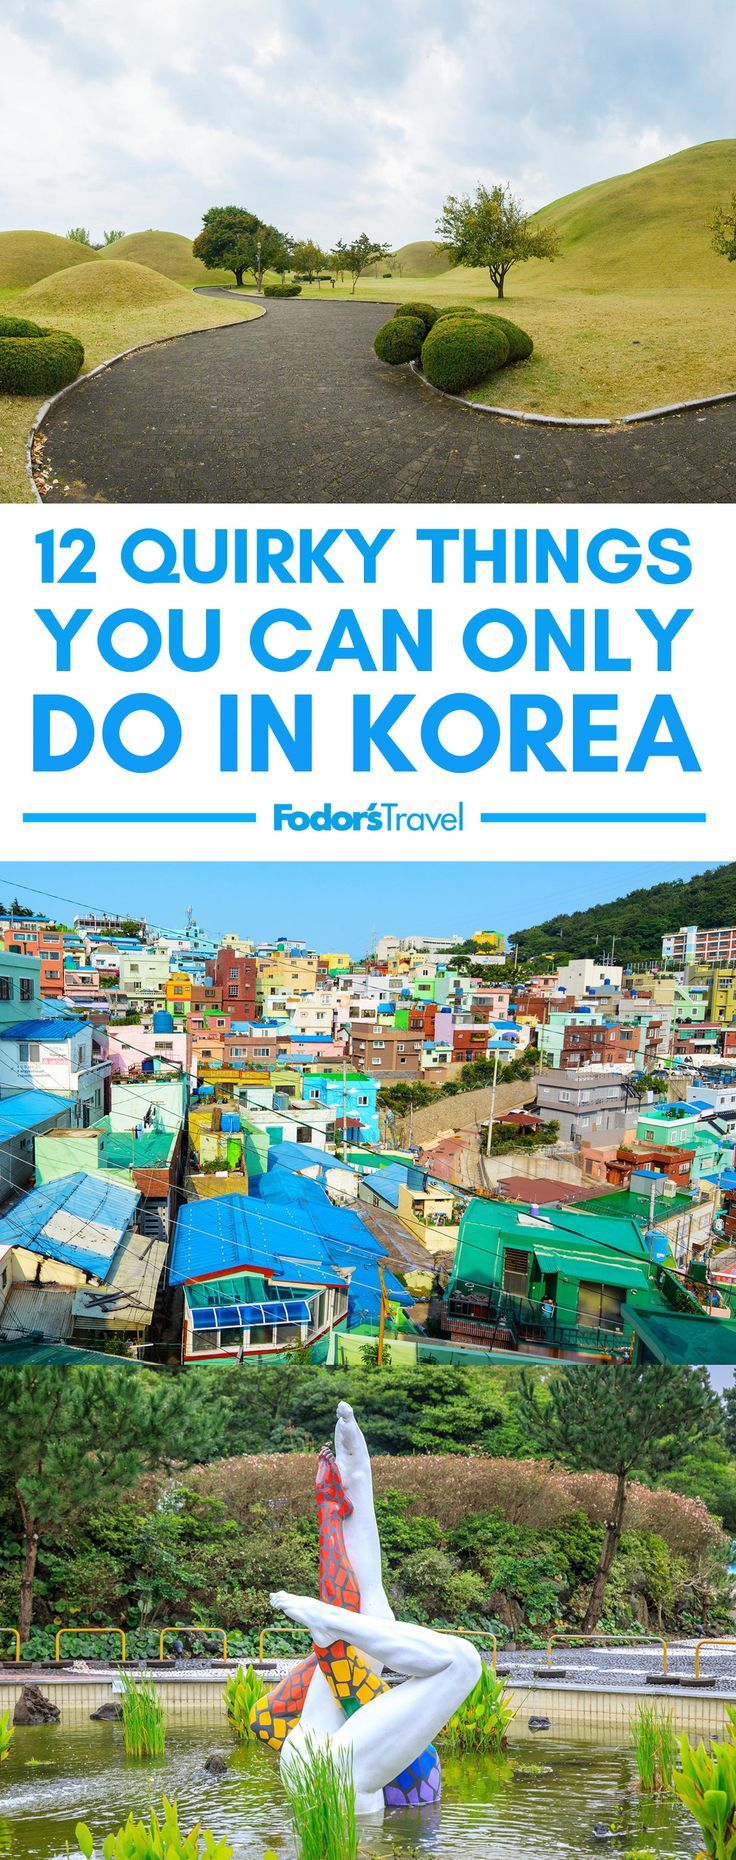 While South Korea may be best known for K-Pop, kimchi, and Taekwondo, this East Asian country of over 51 million people still remains relatively off-the-beaten tourist track. #SouthKorea #Asia #travel #adventure #weird #travelinspiration #wanderlust